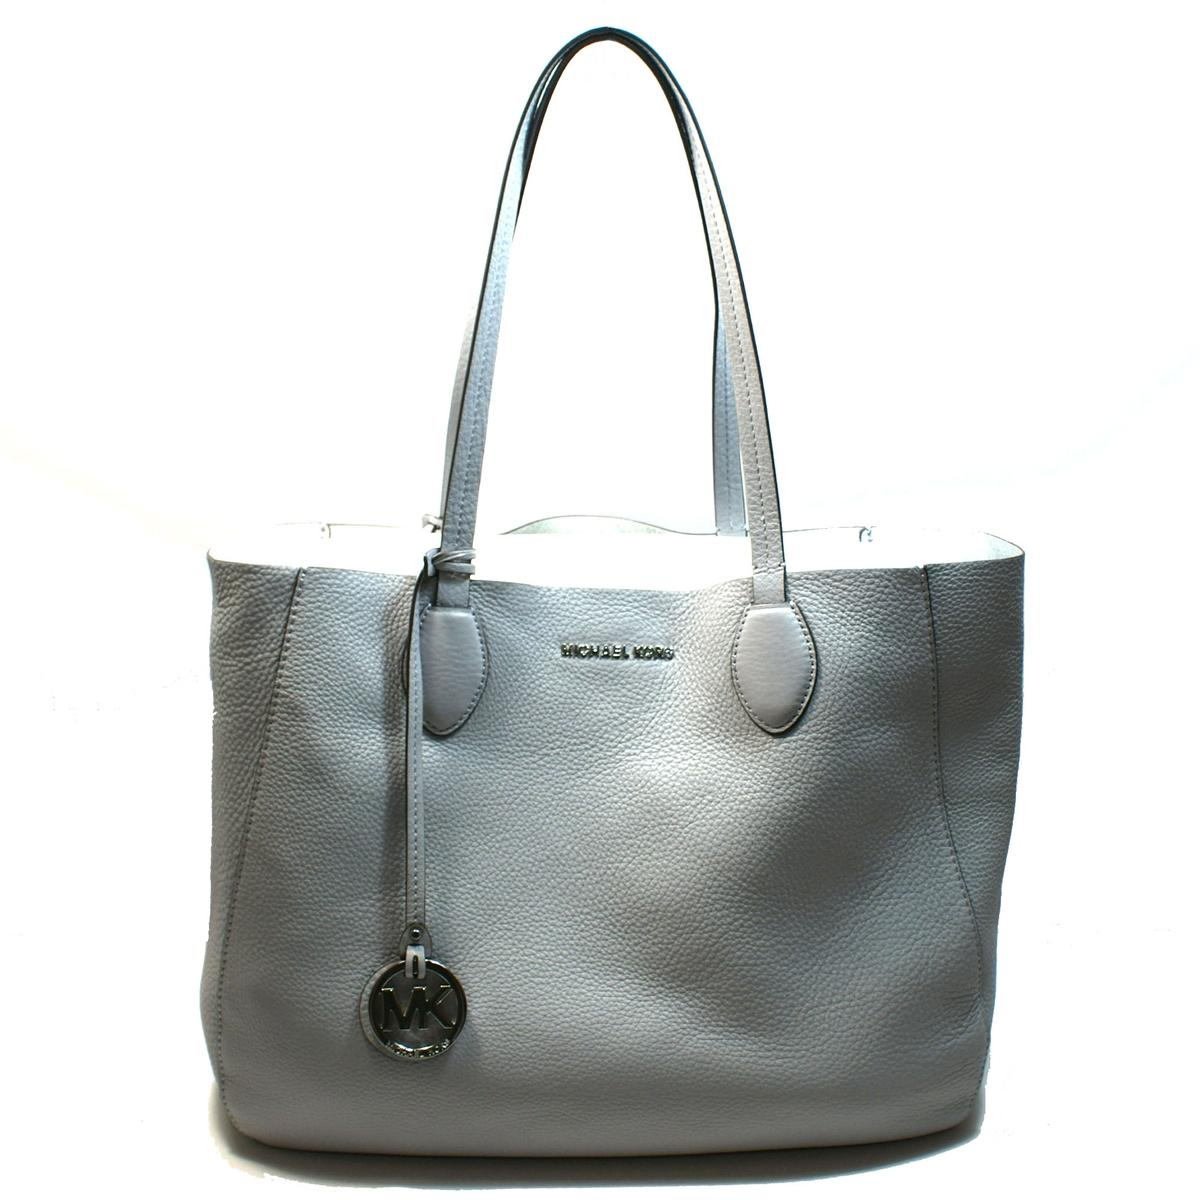 44b87dfc2844 ... Home · Michael Kors · Mae Large East West Leather Tote Dove.